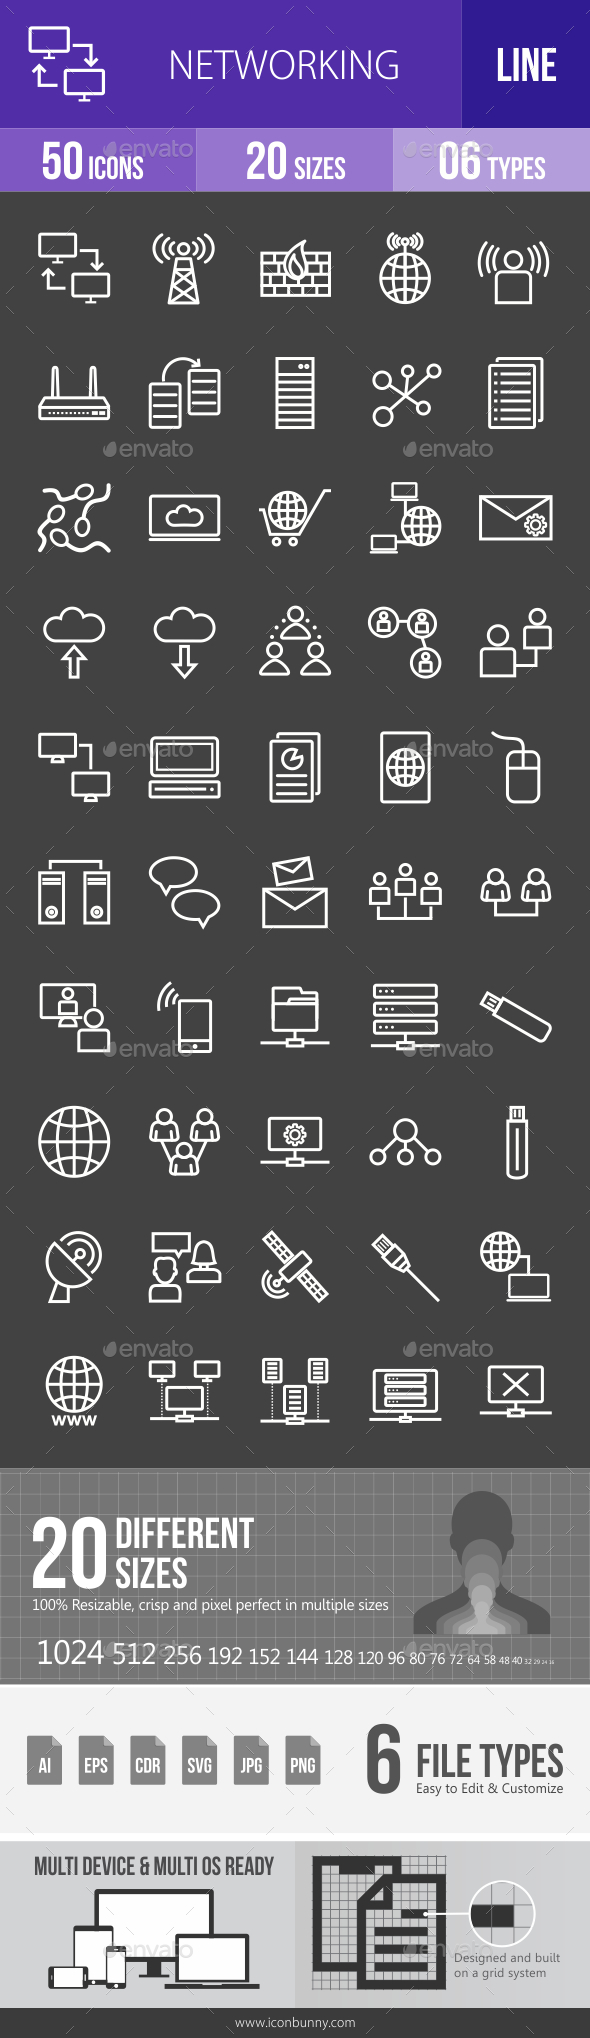 Networking Line Inverted Icons - Icons